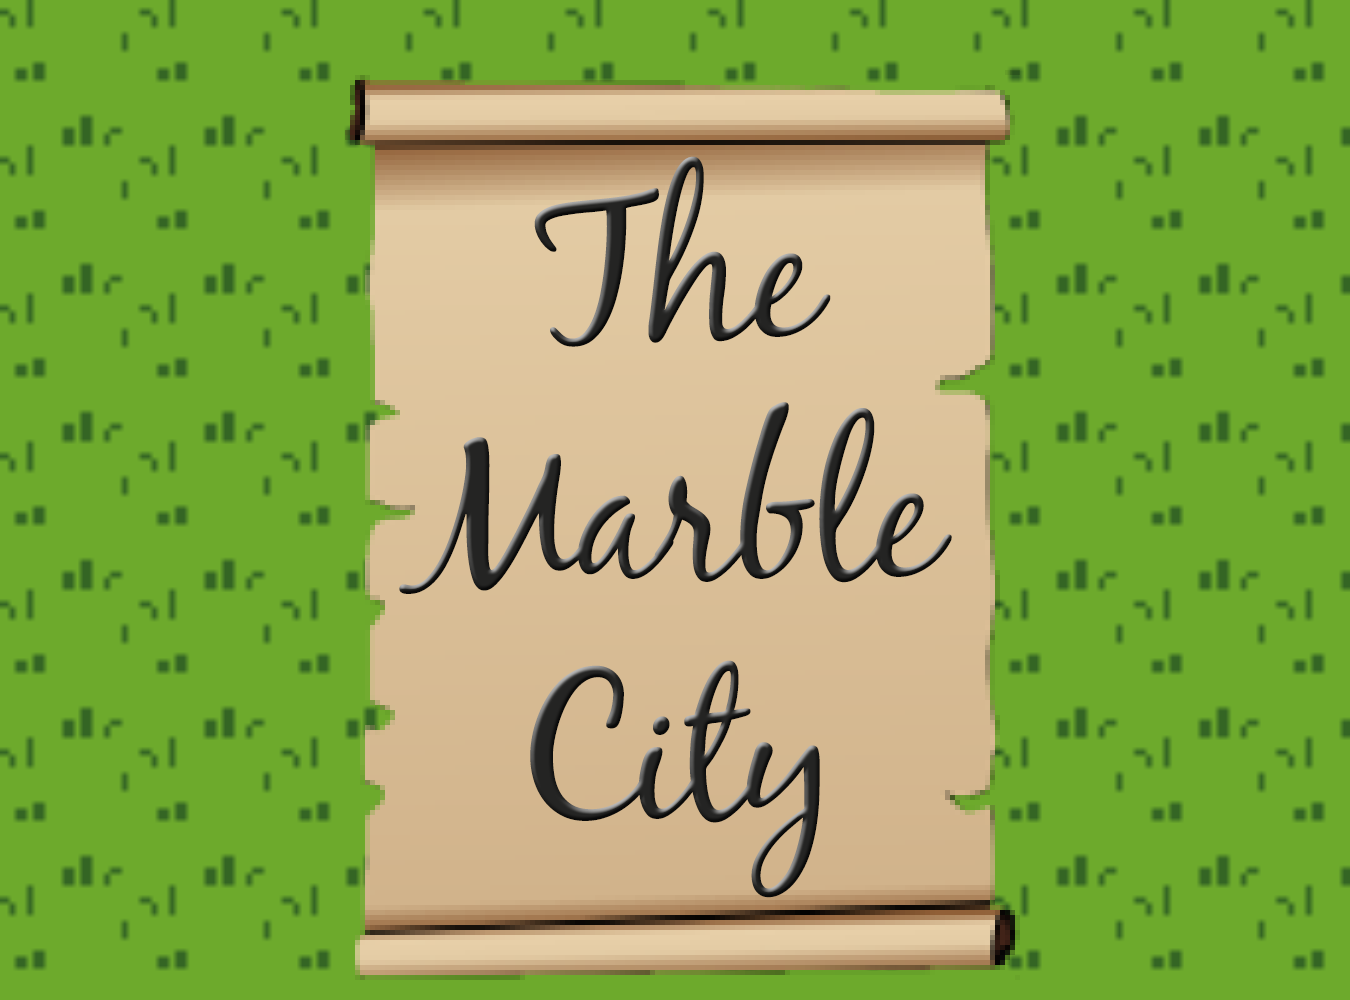 The Marble City